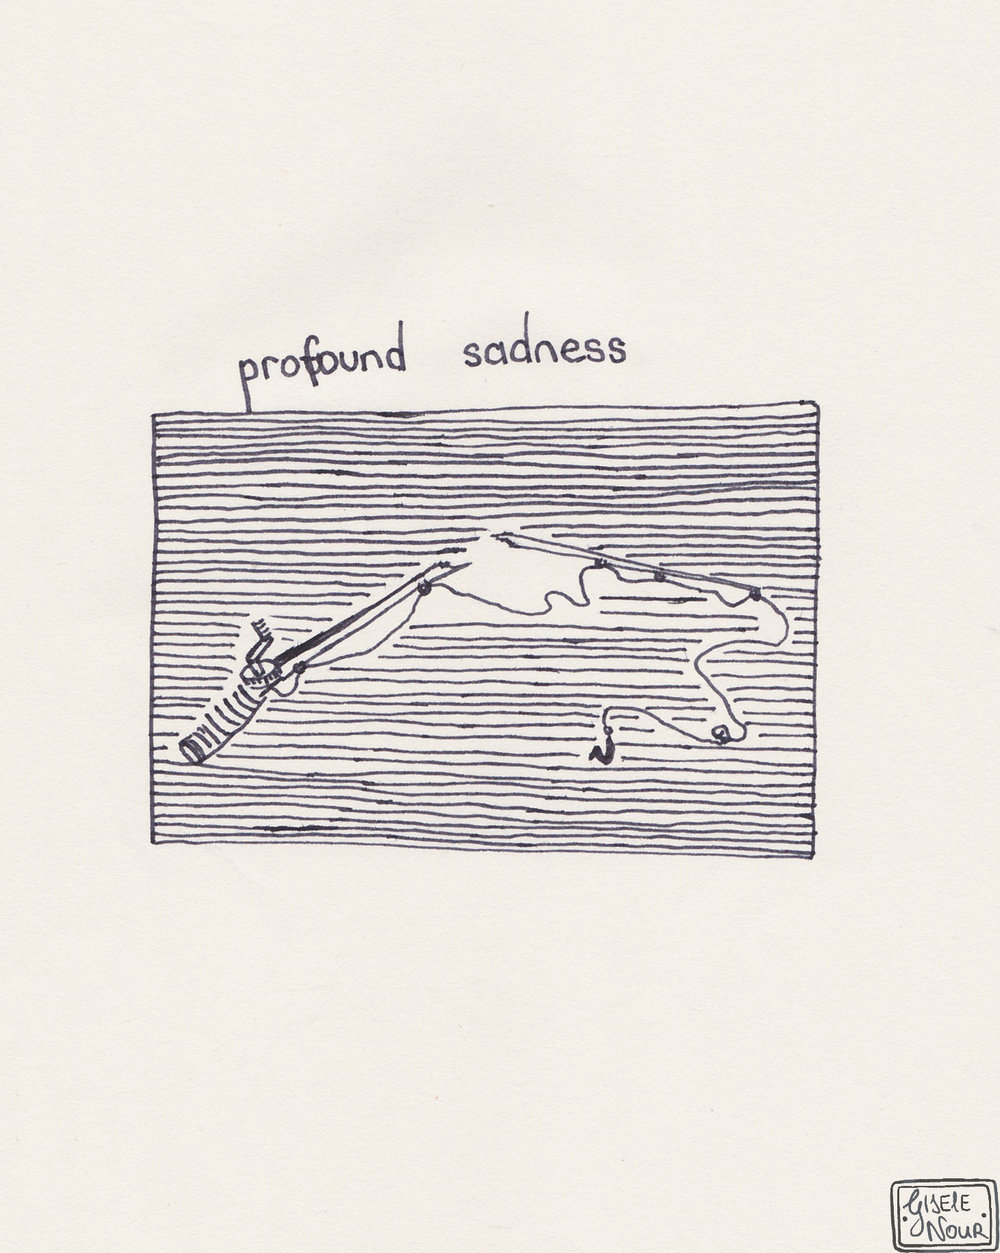 profoundsadness.jpg